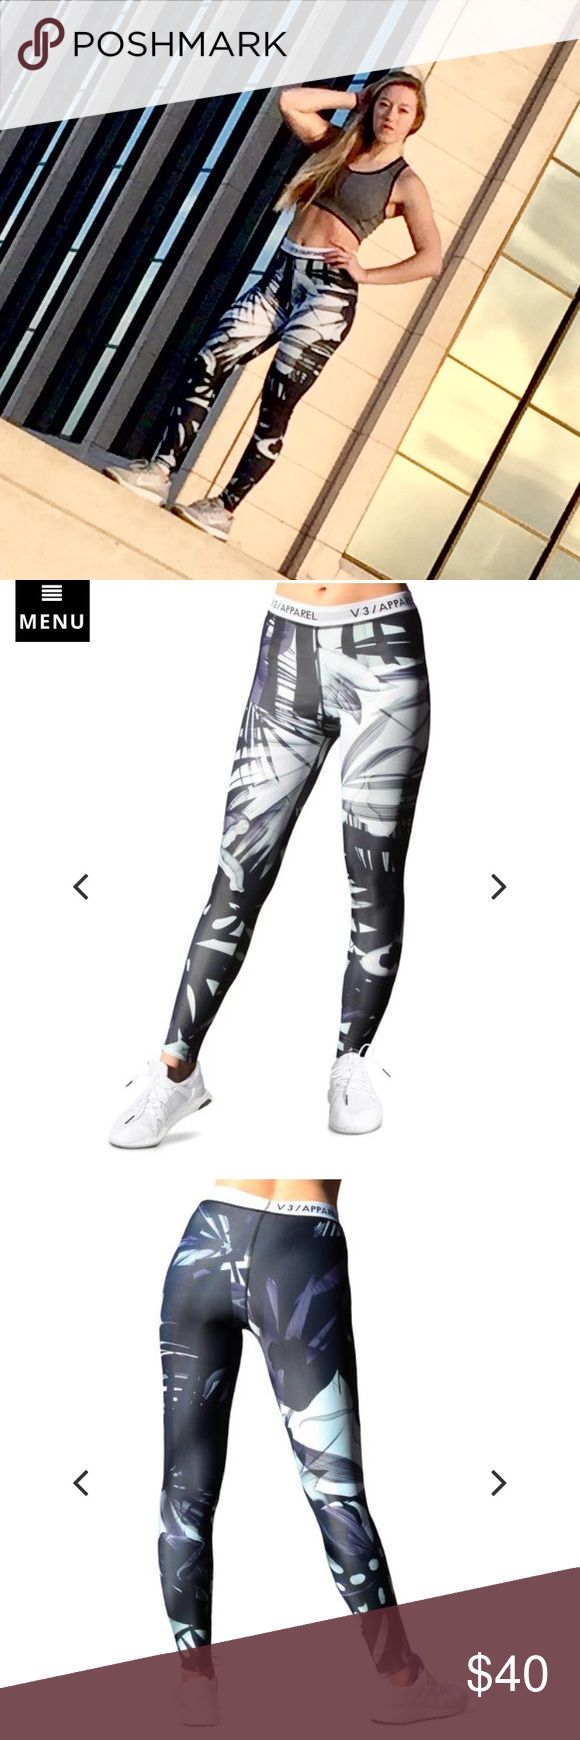 V3 Apparel Bermuda Leggings Wore once for a photoshoot. High-Rise. Squat-Proof (White lining on inside). Sold Out online :) Will negotiate if price is right! TAGS: Lululemon Gymshark Nike  Follow Me:  Instagram @nikiblackwelder Twitter @nikiblackwelder lululemon athletica Pants Leggings